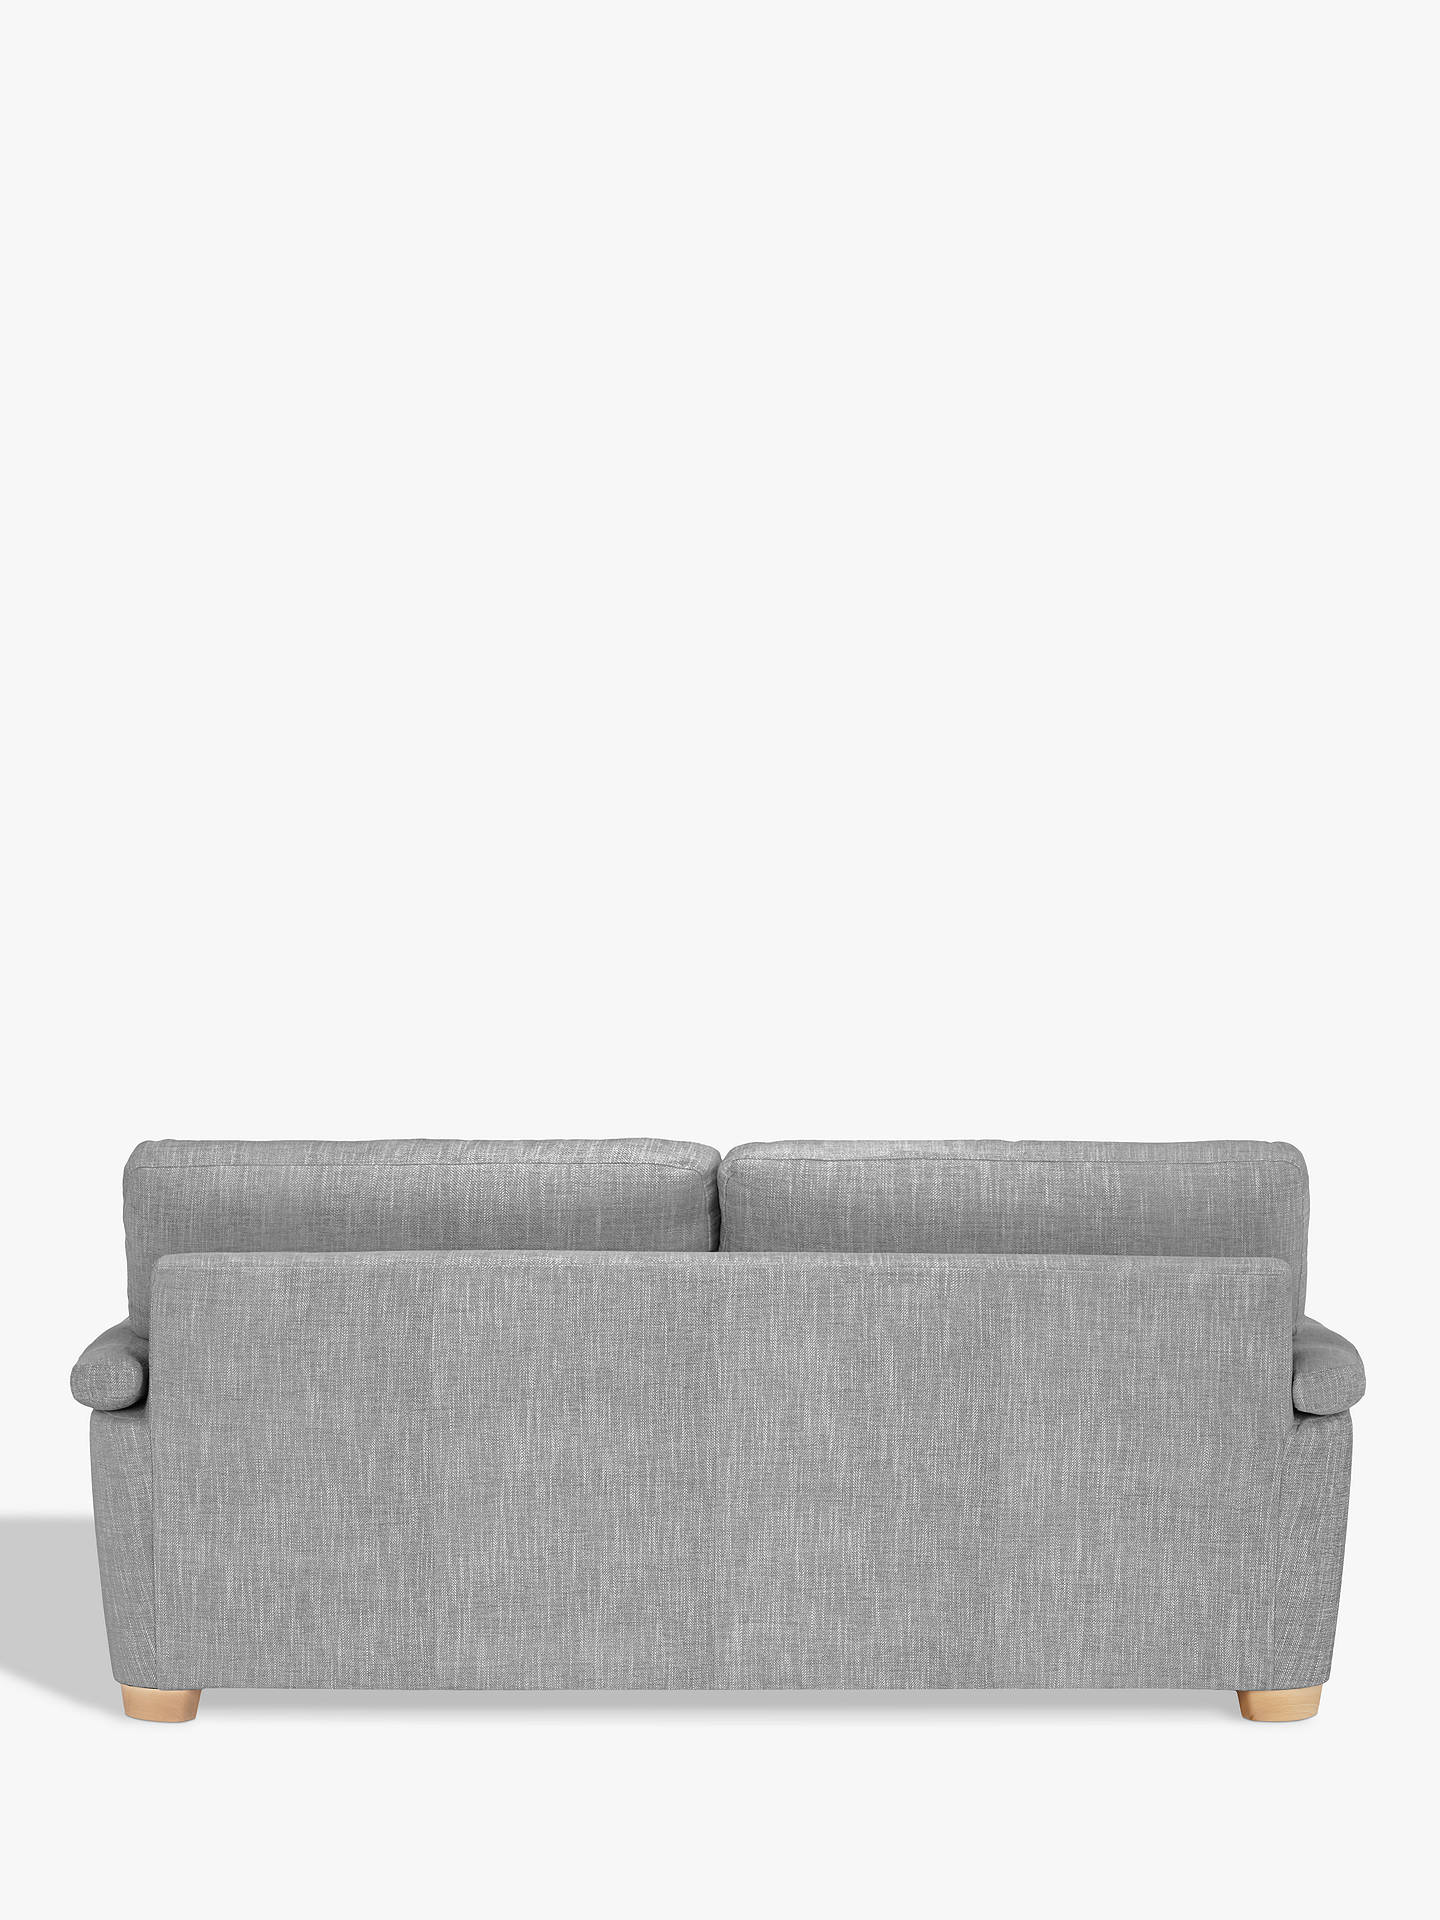 Buy John Lewis & Partners Camden Large 3 Seater Sofa, Light Leg, Catrin Charcoal Online at johnlewis.com